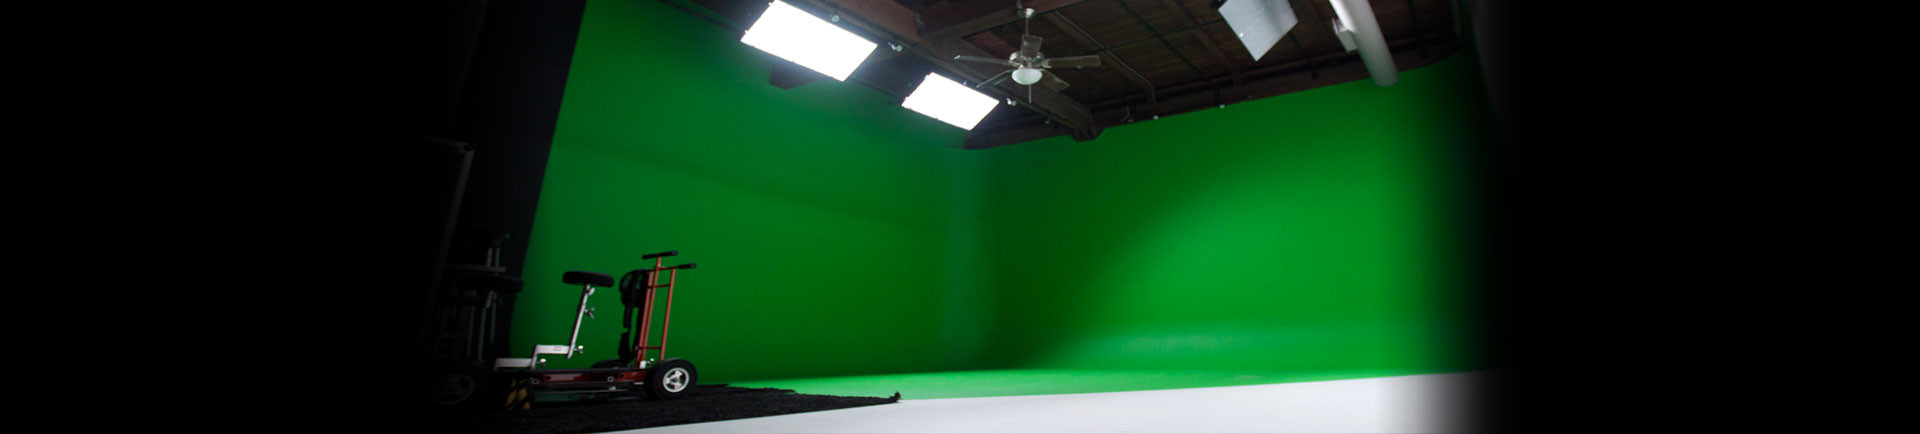 713 Music Green Screen